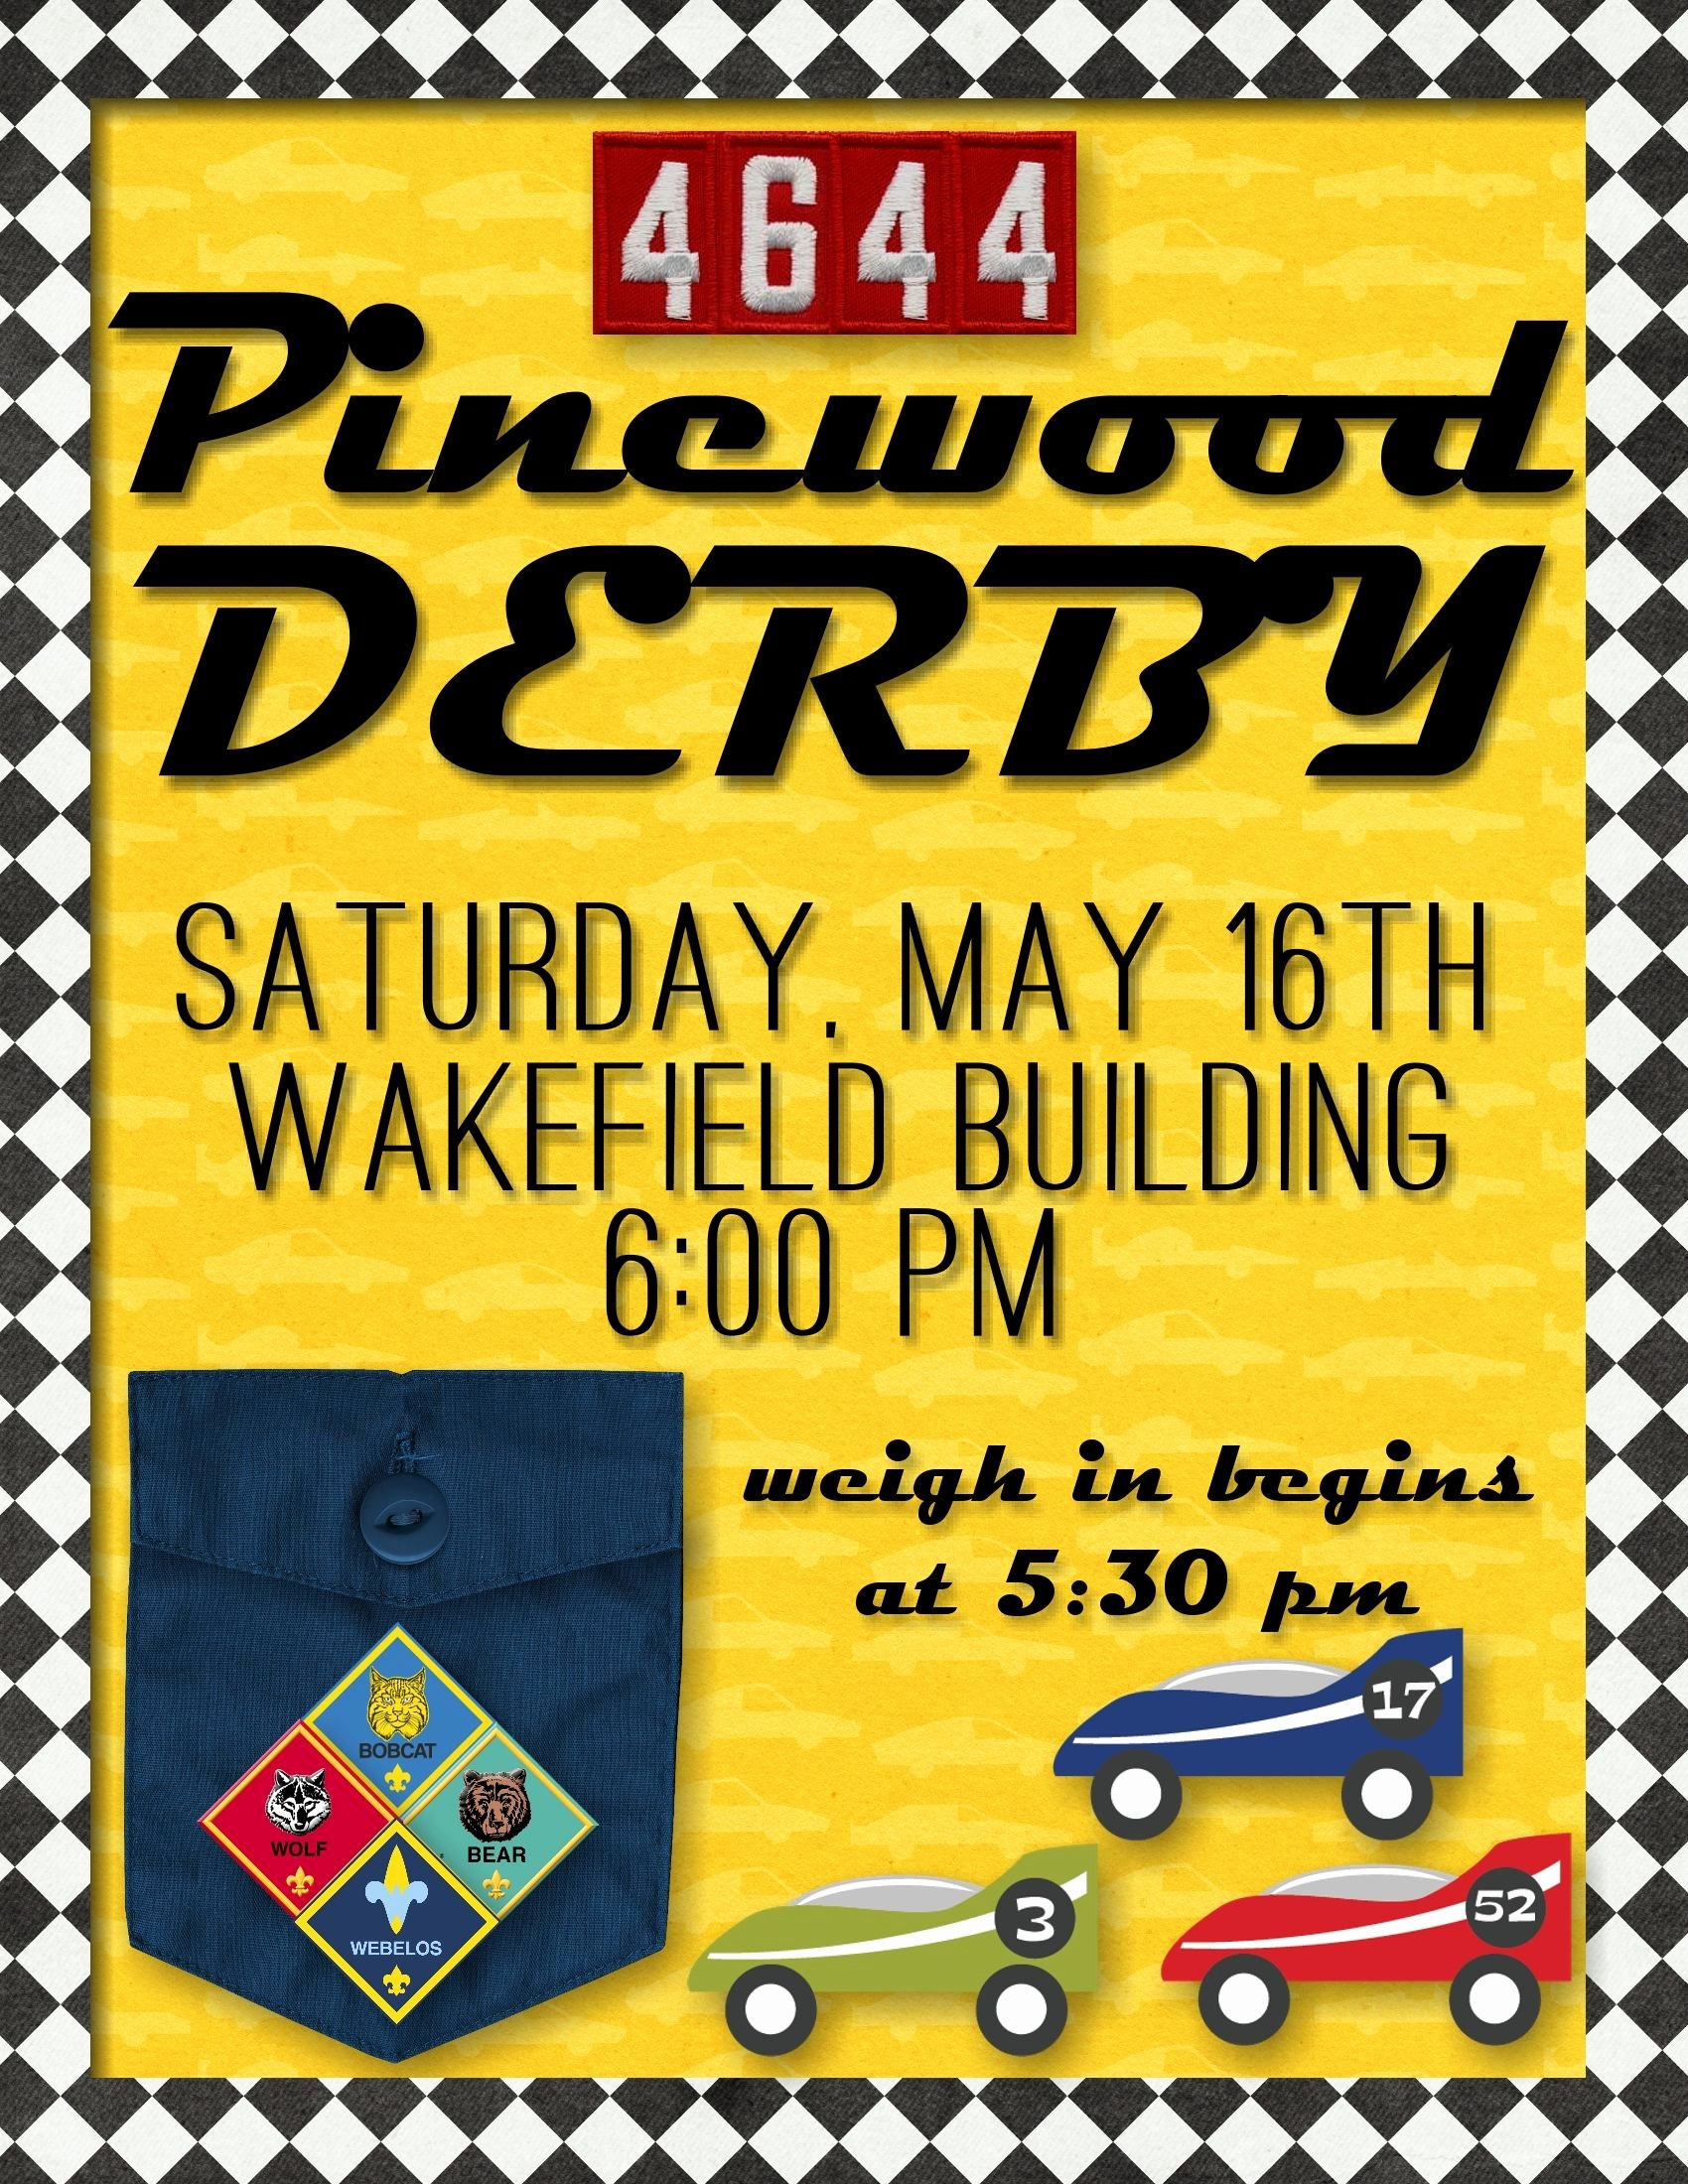 Cub Scout Flyer Template Beautiful Cub Scout Pinewood Derby Flyer Primary